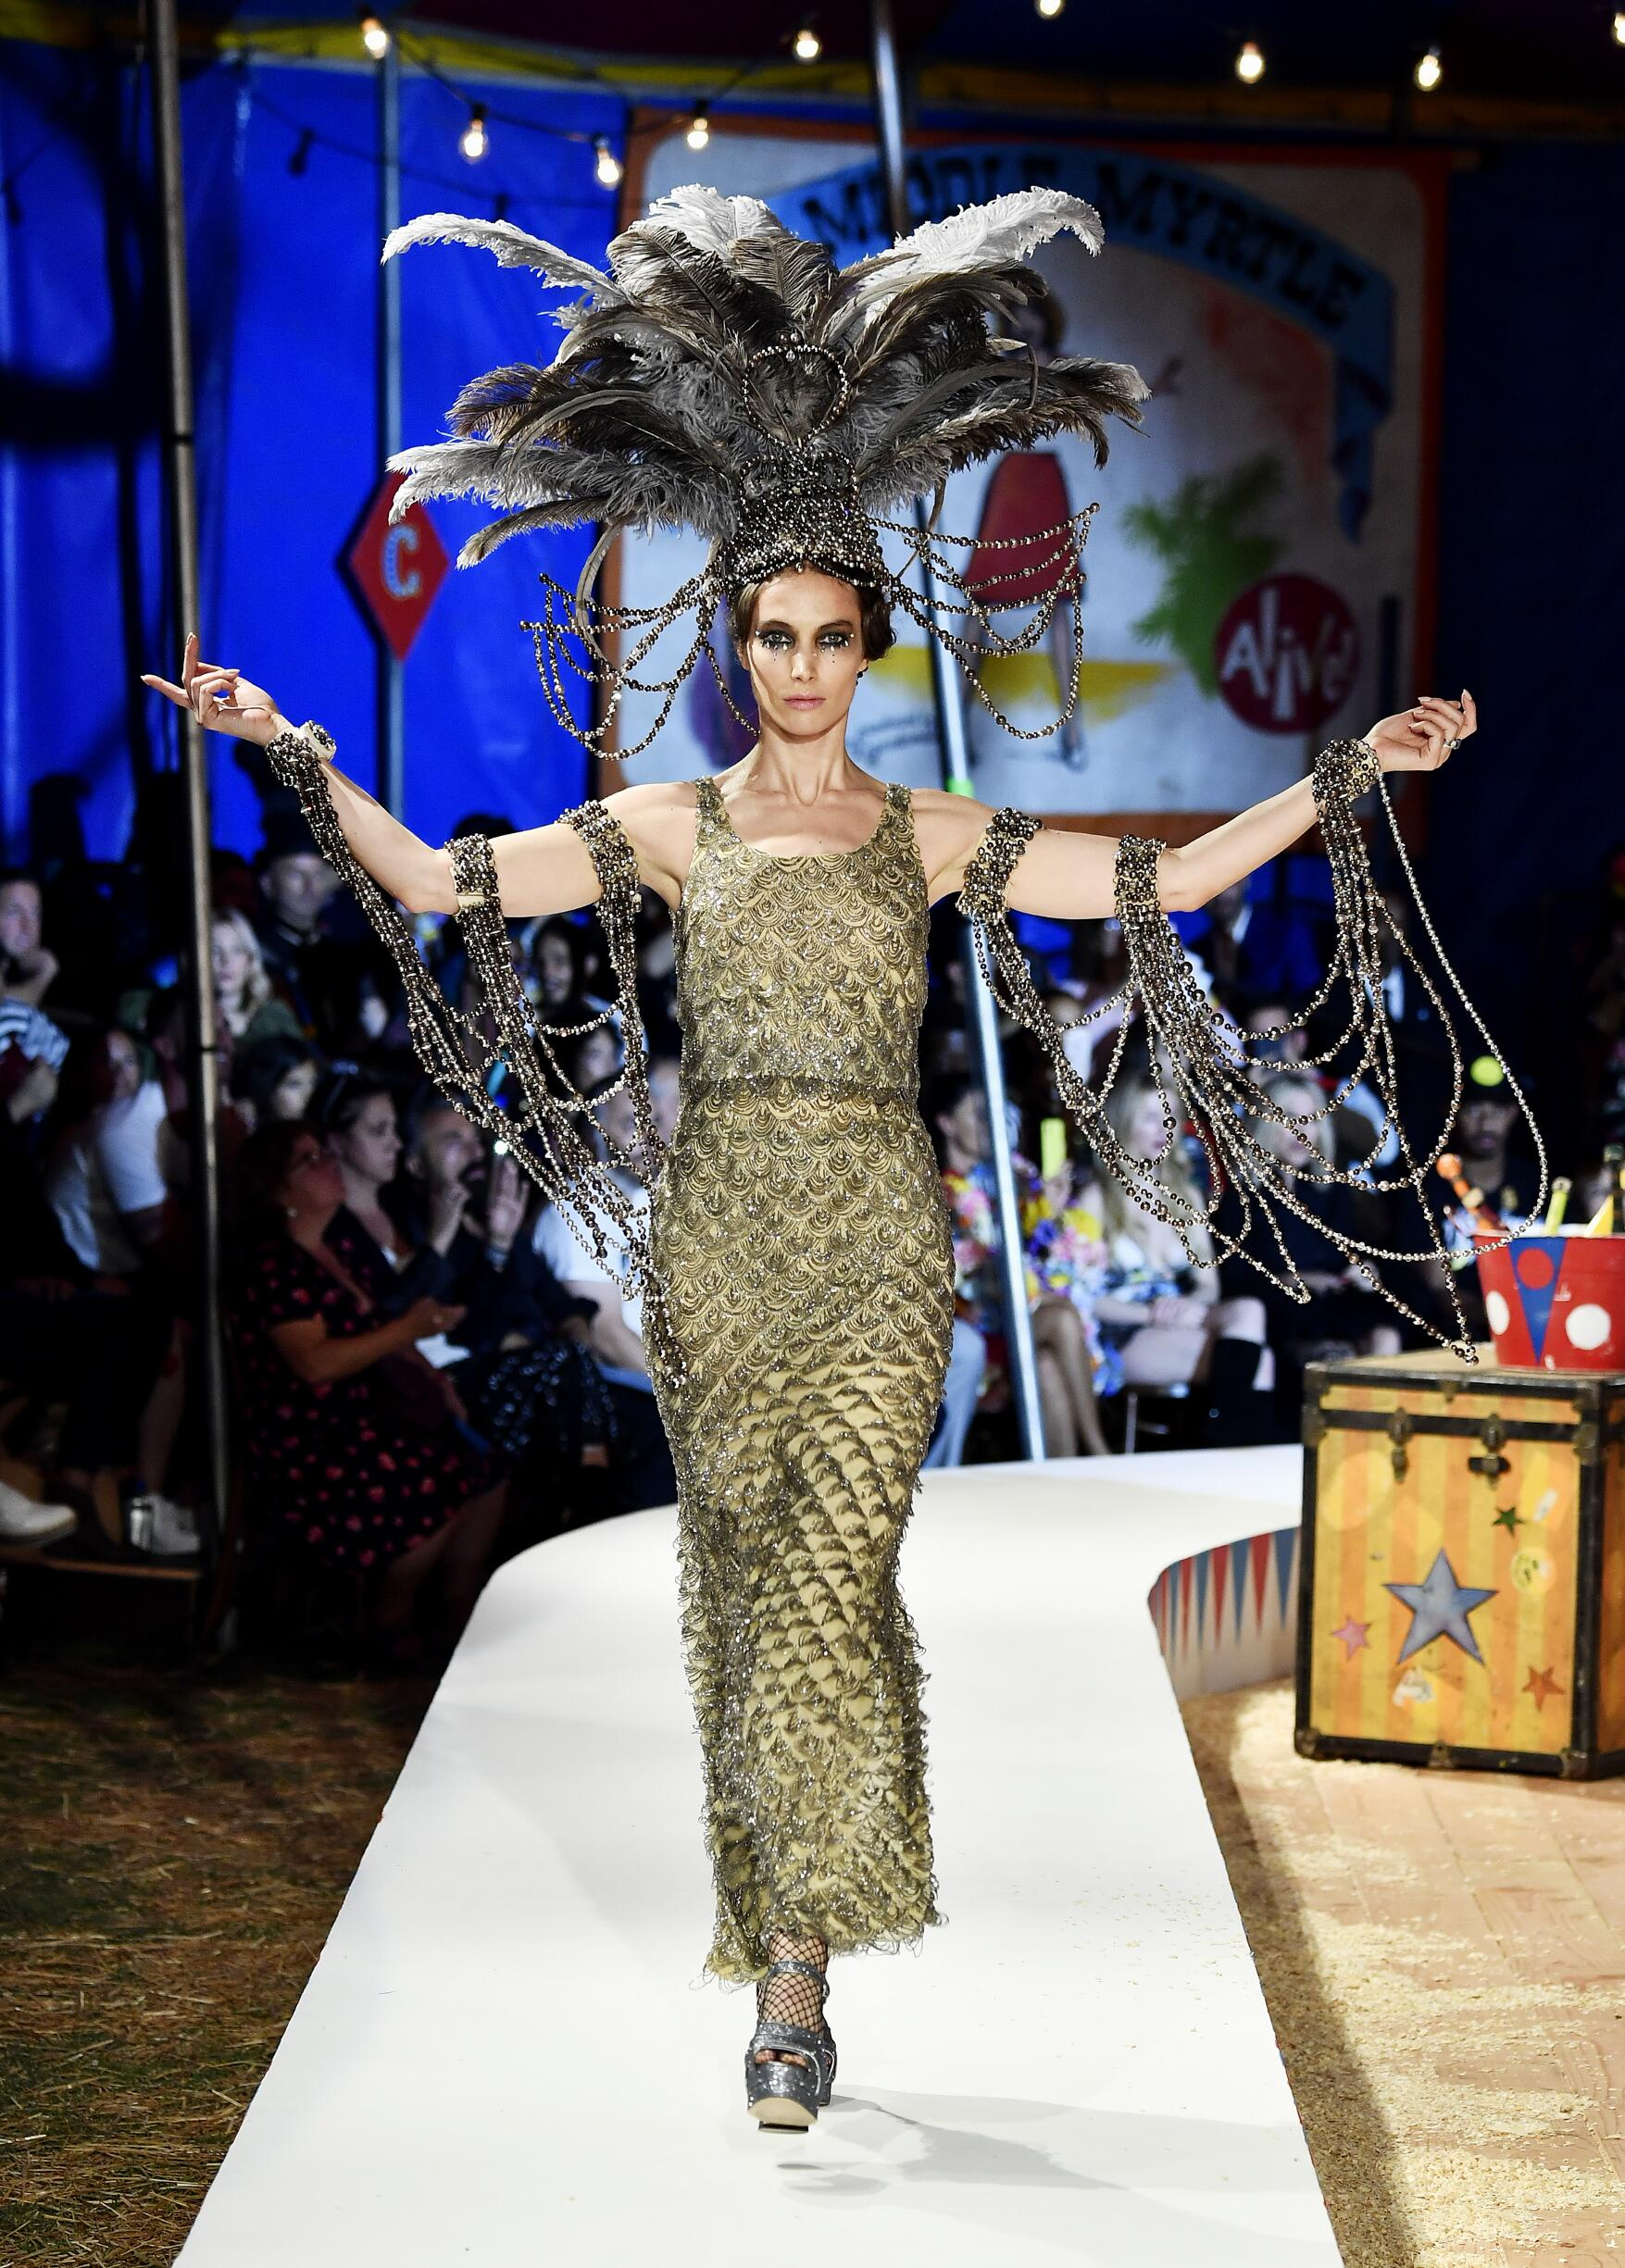 Moschino Spring Summer 2019 Menswear and Women's Resort Collection Look 88 Los Angeles